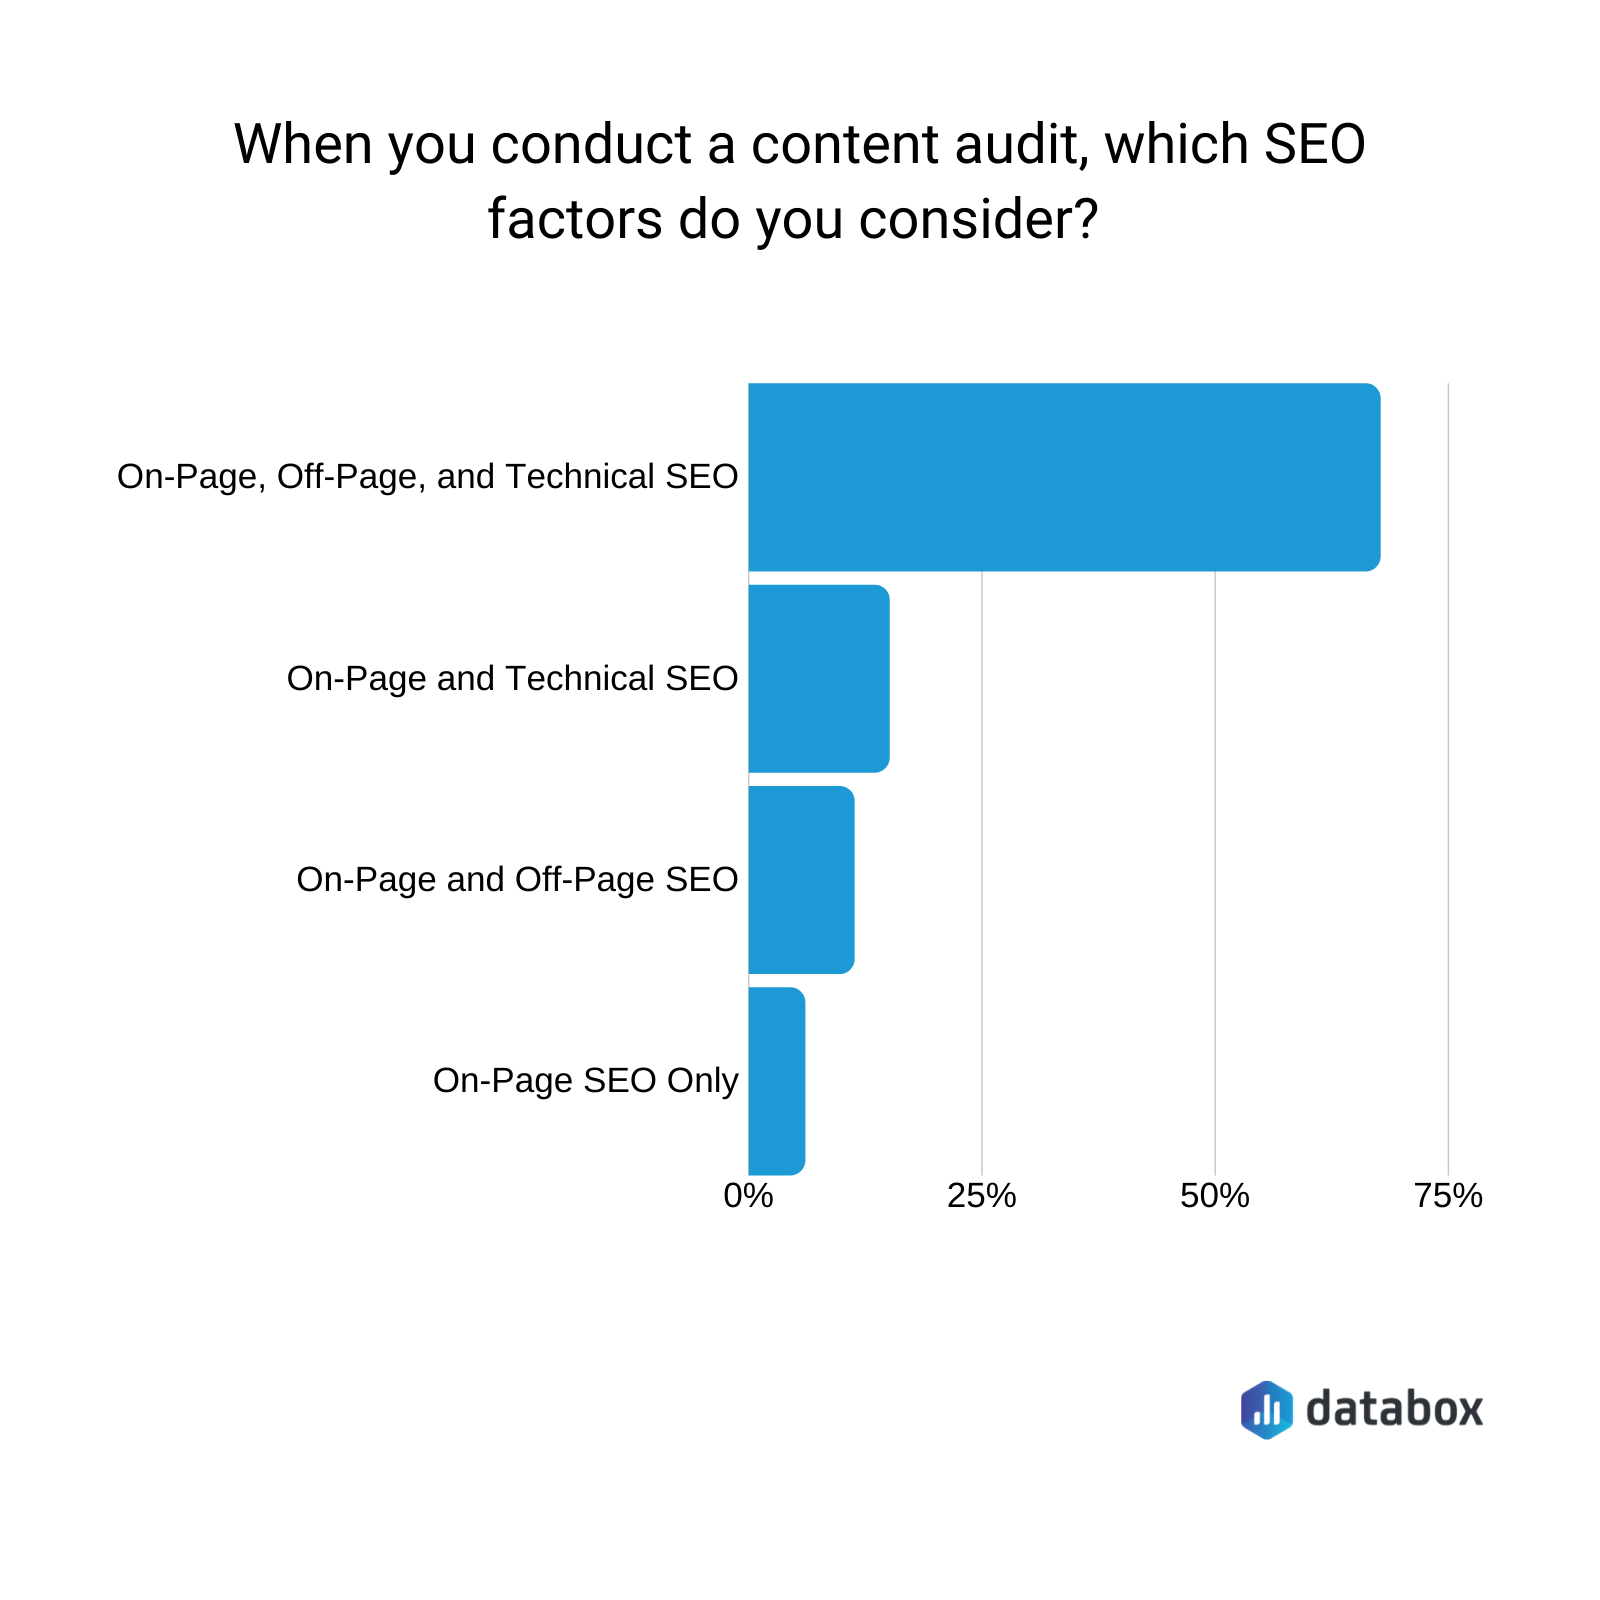 on-page, off-page, and technical seo are all a part of an seo content audit